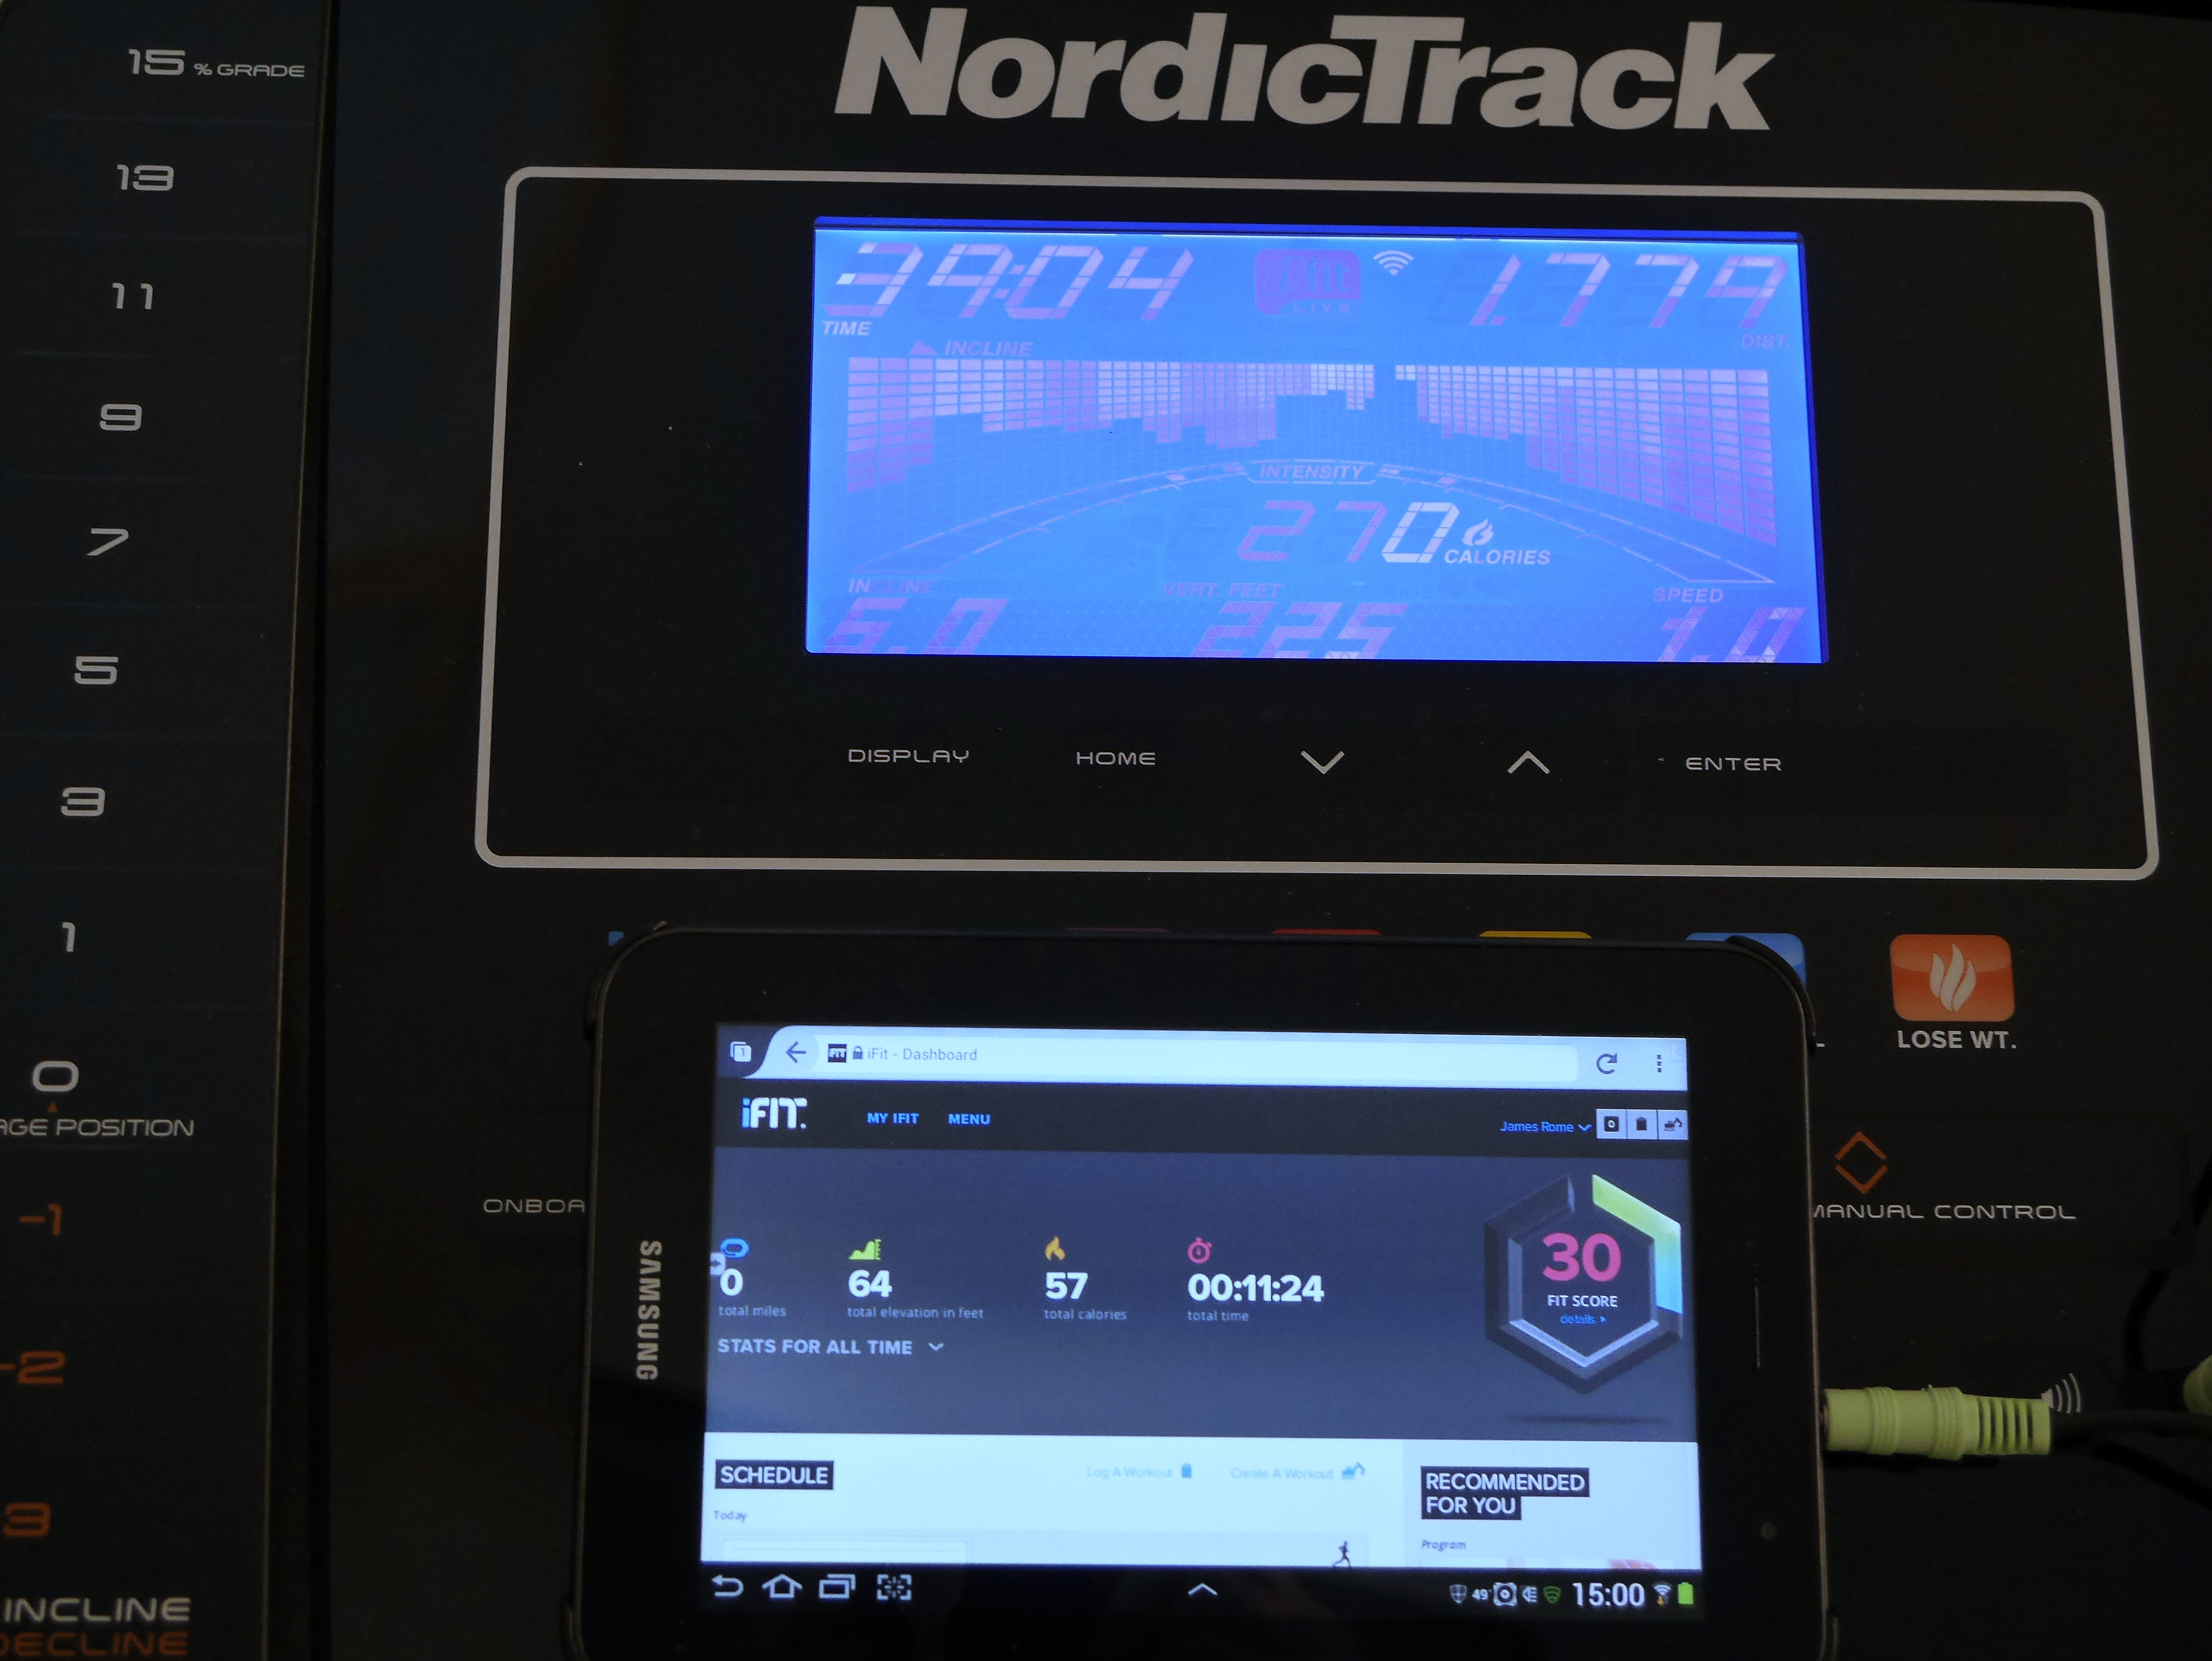 Nordictrack And Ifitgood Idea Awful Execution Jim Romes Wiring Diagram Notice That I Just Have Completed A 39 Minute Workout But My Dashboard Total Time Is 11 Minutes Burned 225 Calories Not The 57 Are Shown